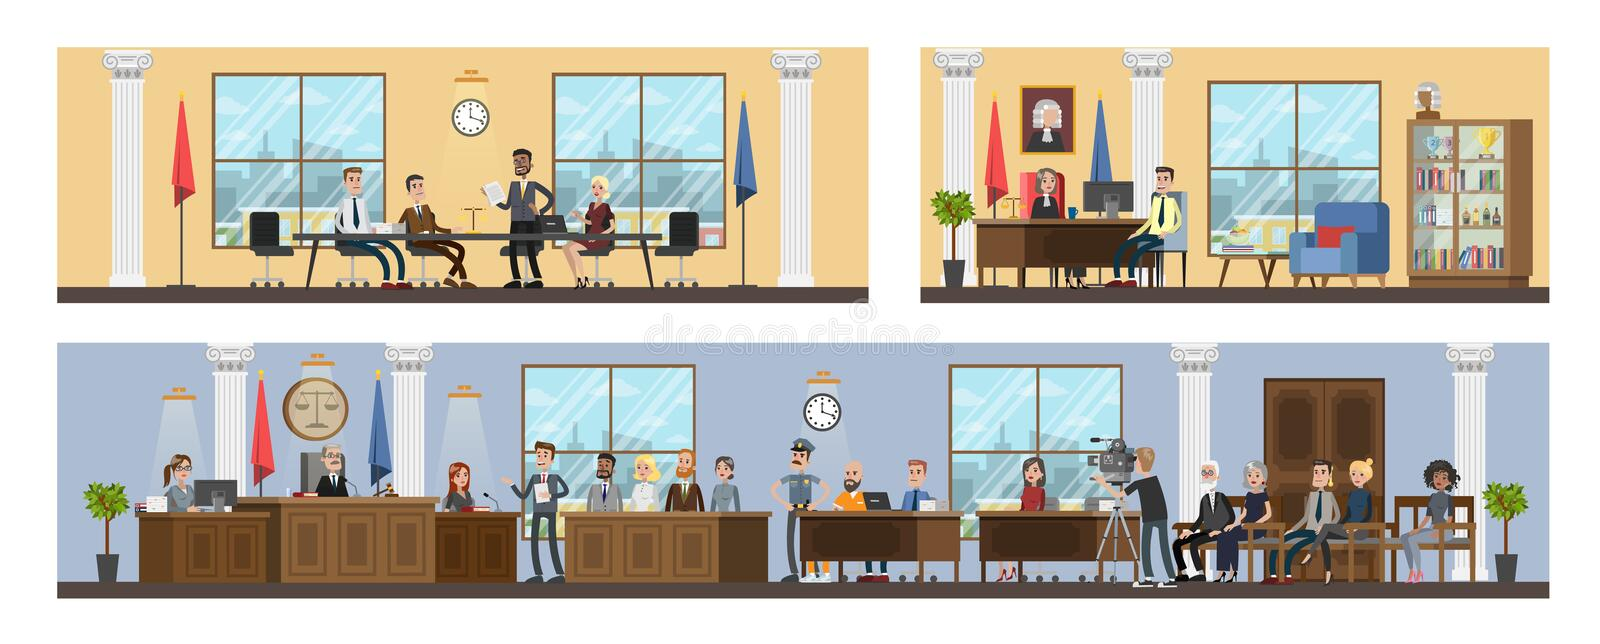 Court building interior with courtroom and offices. Trial process with judge, jury and suspect. Vector flat illustration stock illustration